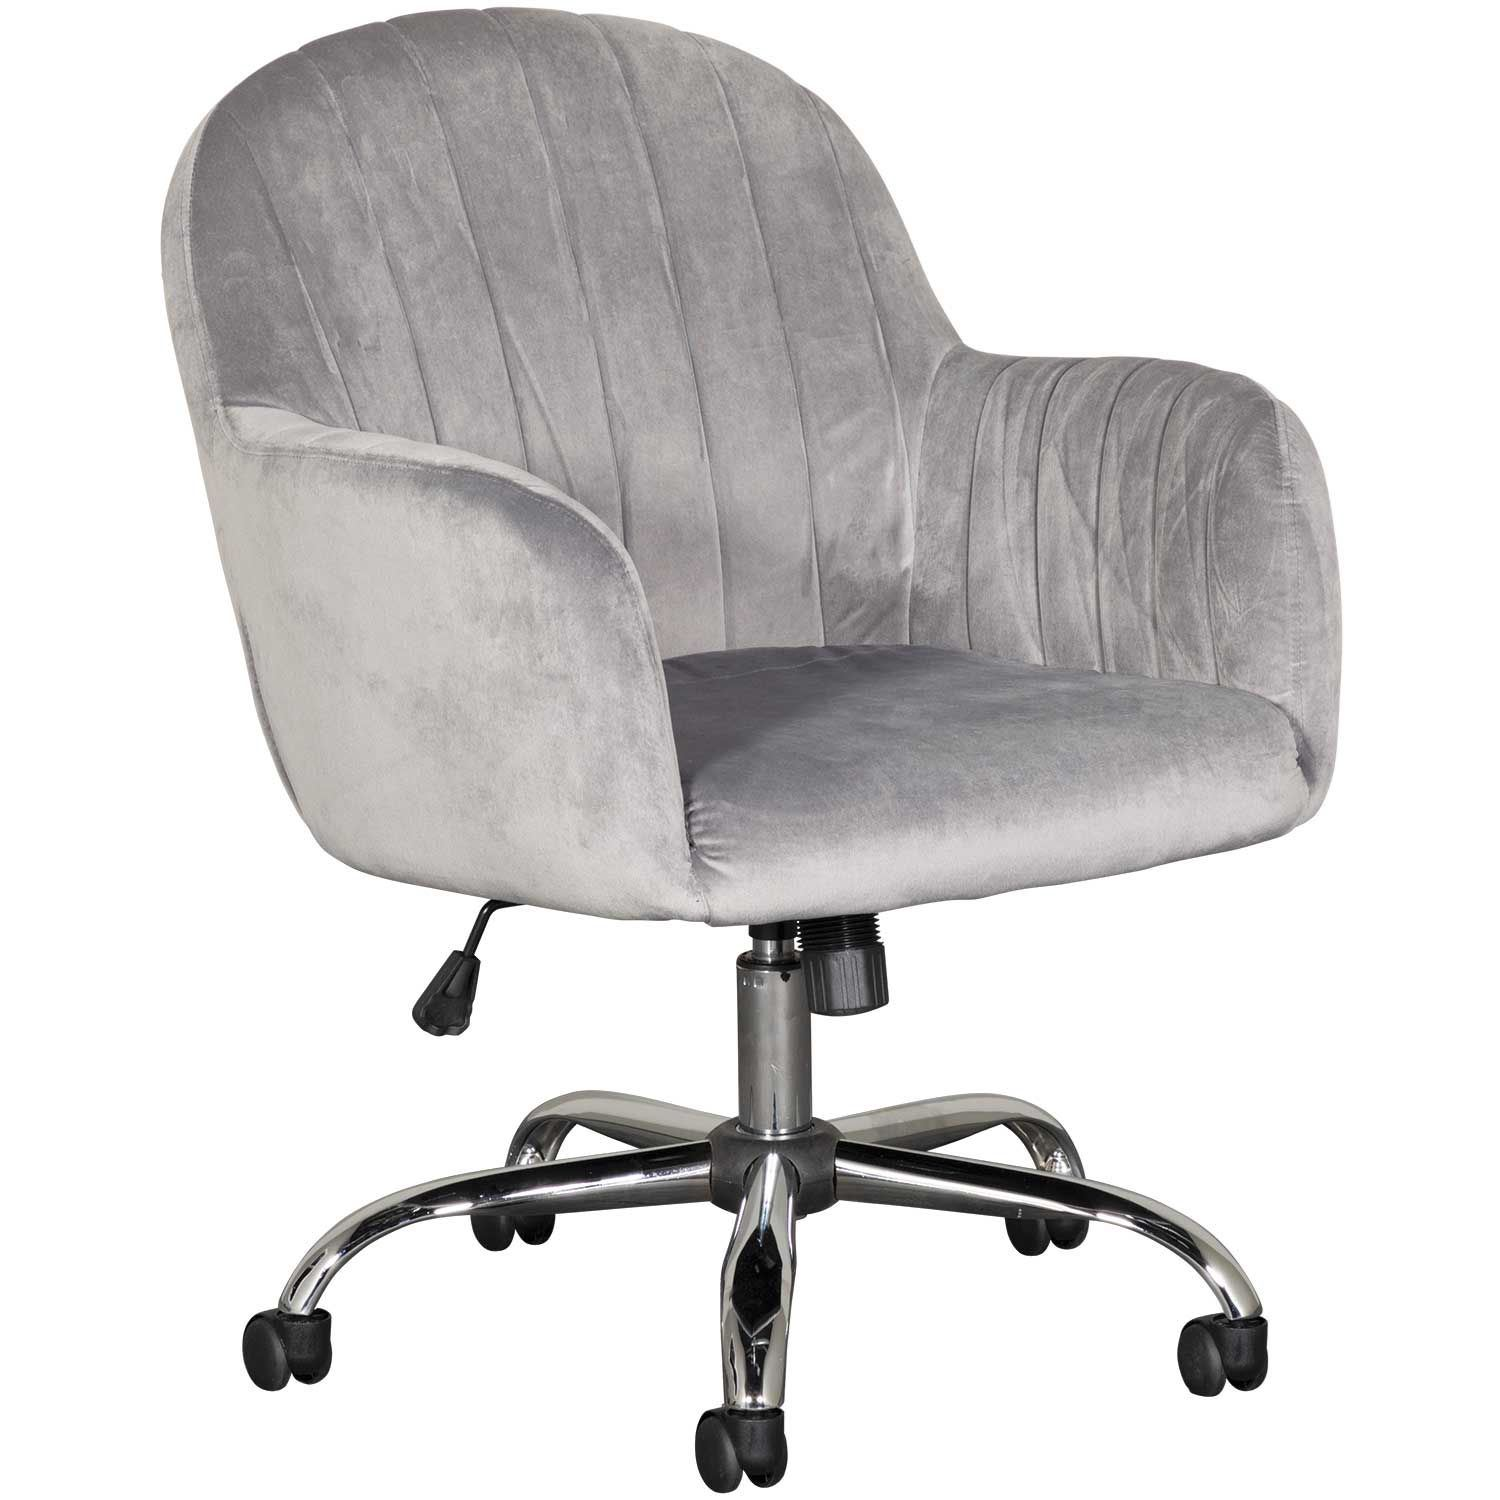 Tremendous Office Chair Velvet Grey Bralicious Painted Fabric Chair Ideas Braliciousco